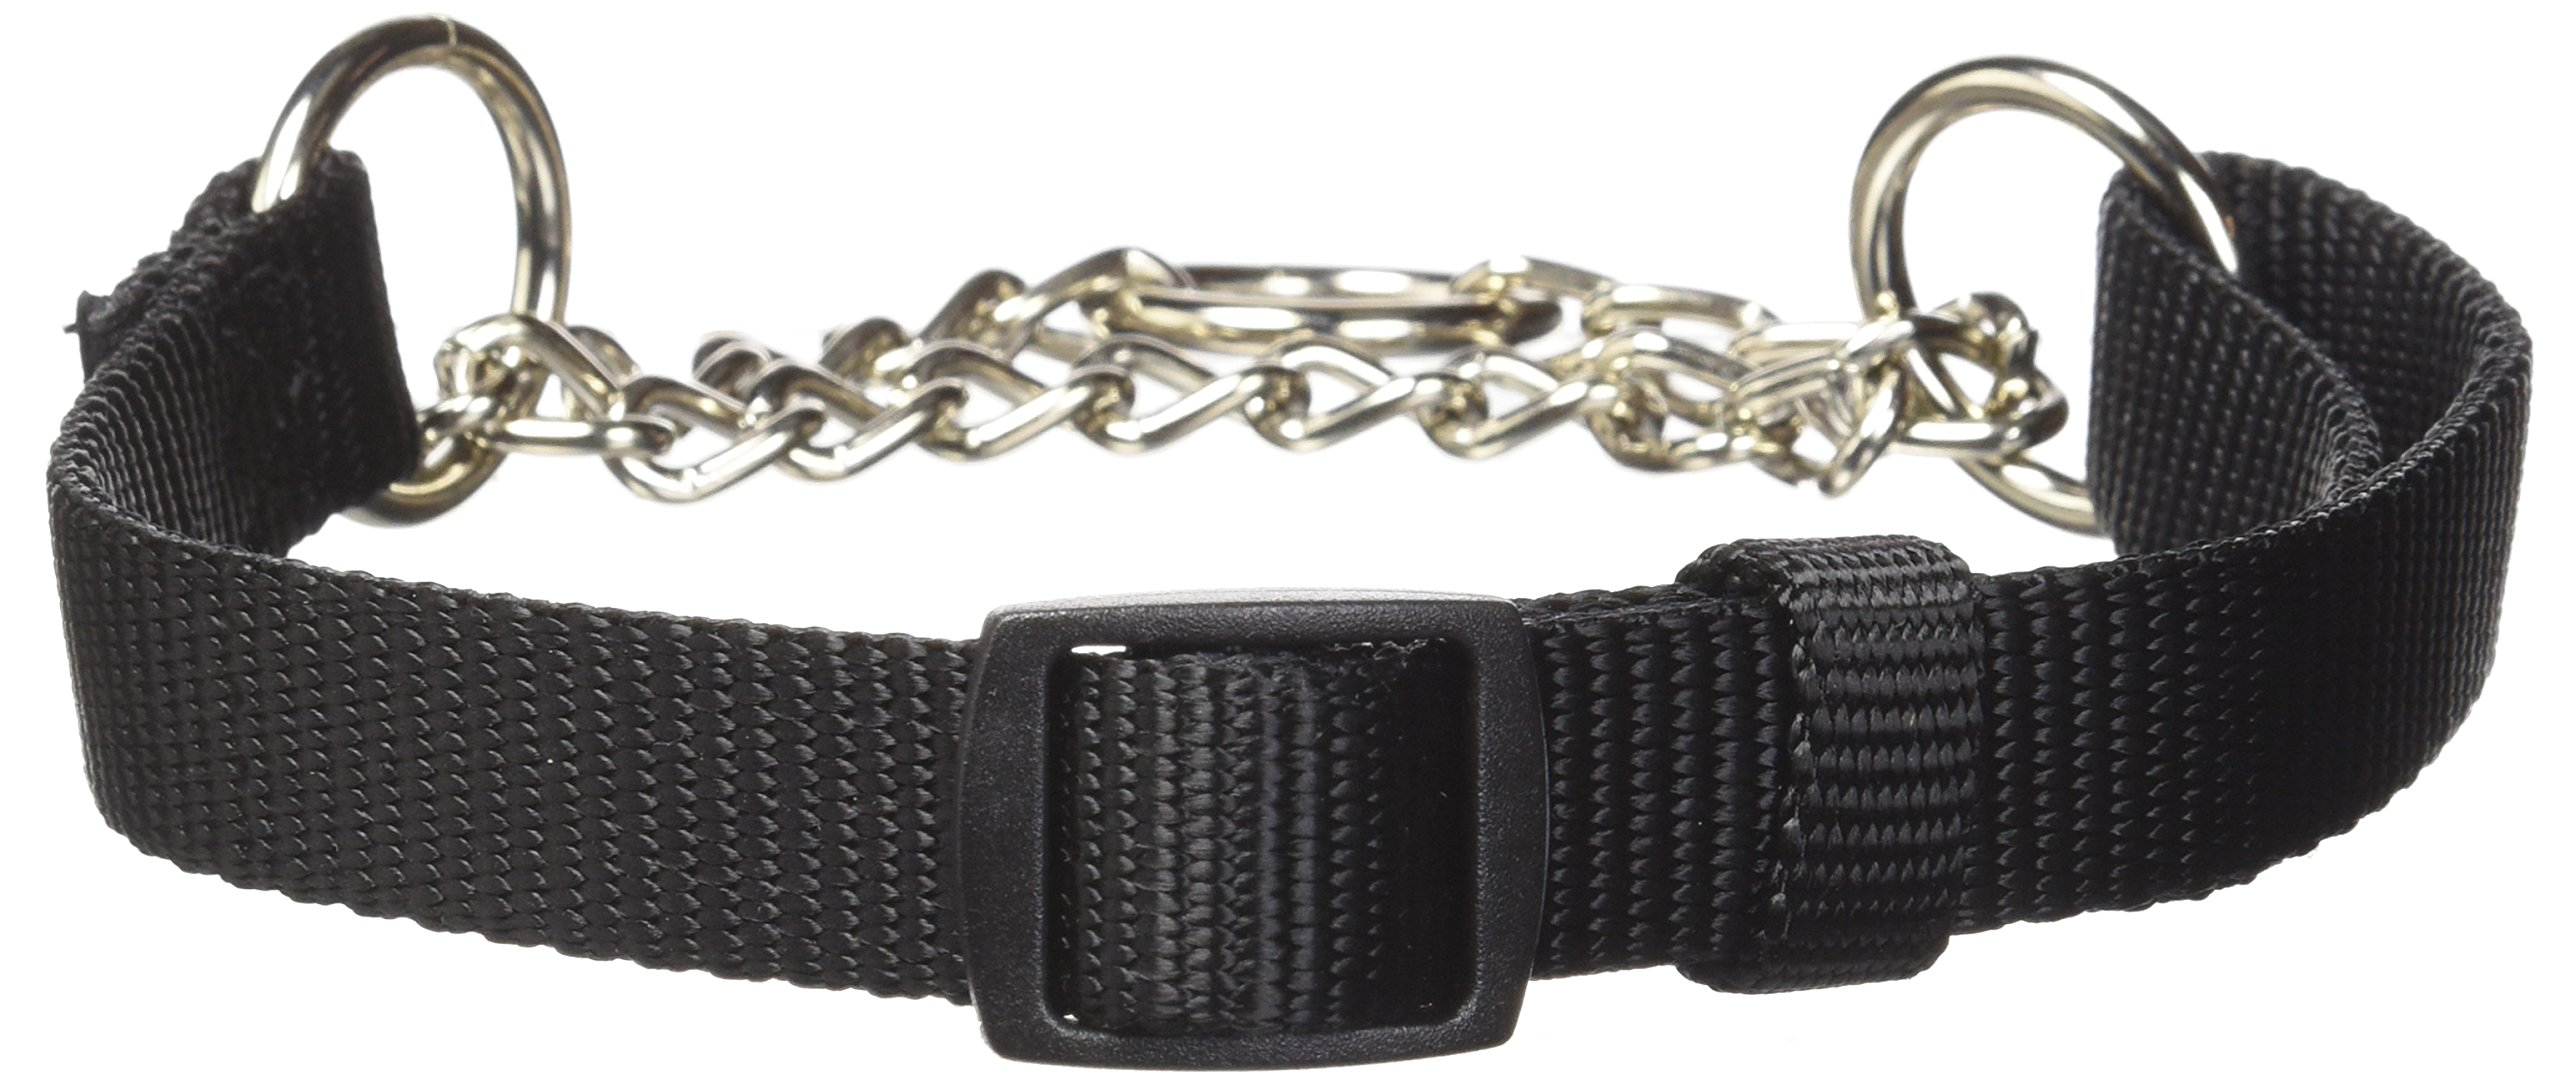 Hamilton Adjustable Combo Choke Dog Collar